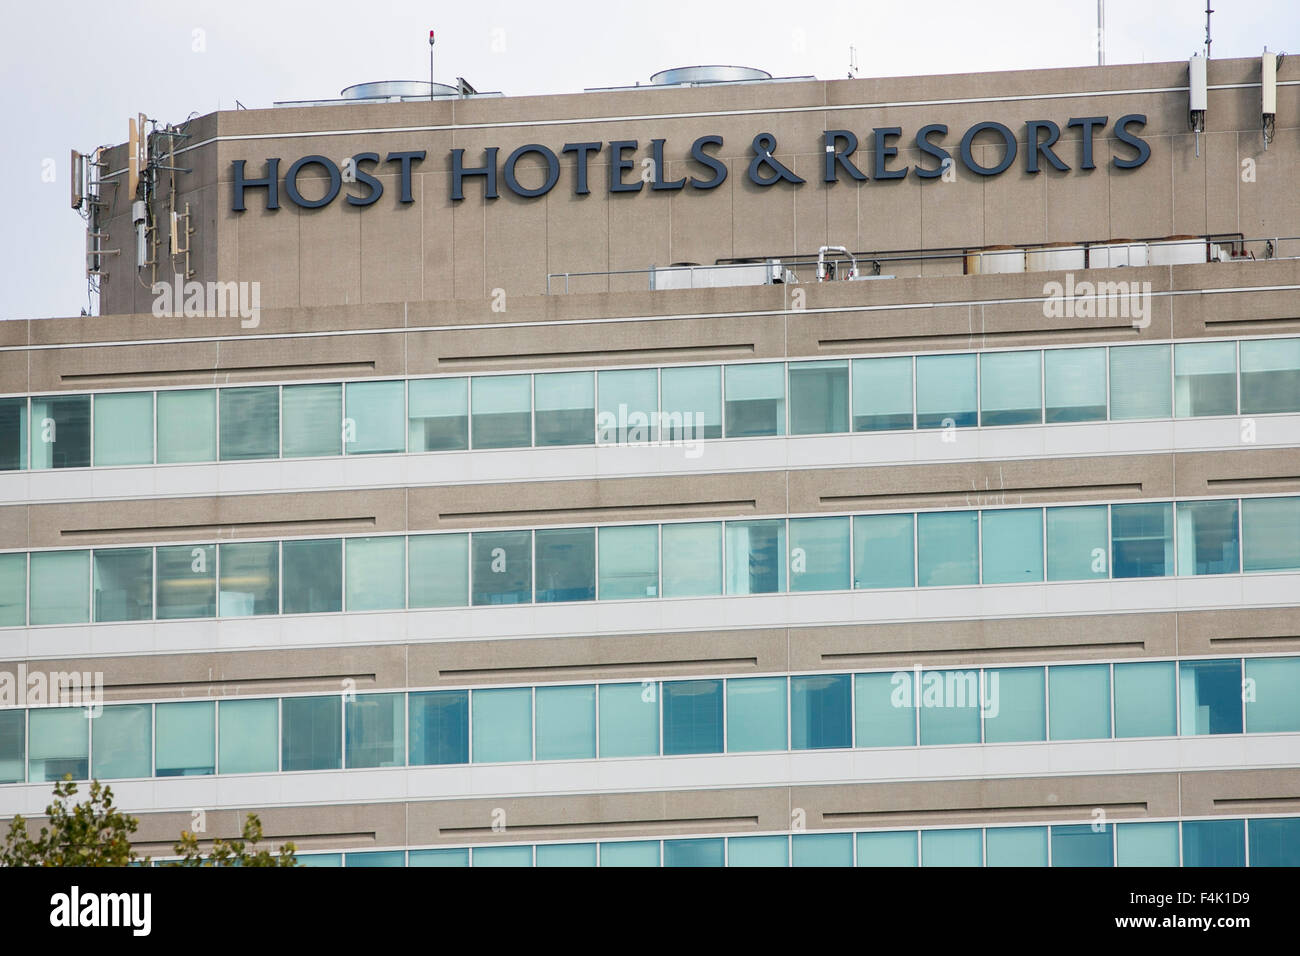 A logo sign outside of the headquarters of Host Hotels & Resorts in Bethesda, Maryland on October 18, 2015. - Stock Image